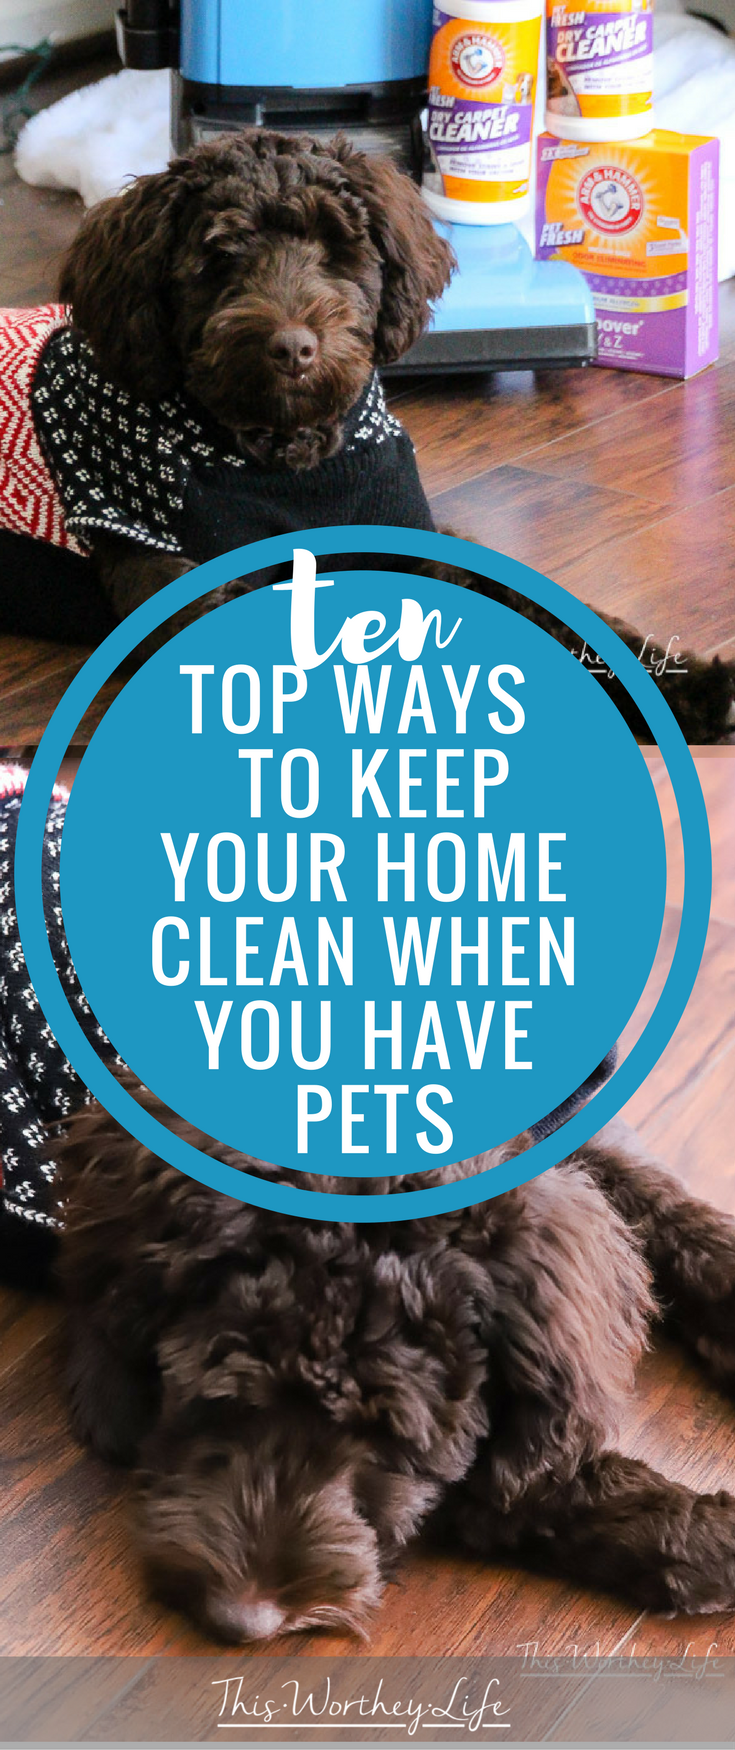 10 Top Ways To Keep Your Home Clean When You Have Pets. The holidays are here, and I'm sharing things I do to make sure my house is clean and ready to go. When you have pets, you may need to go the extra mile. Here's how I avoid doing a lot backbreaking cleaning before the holidays.